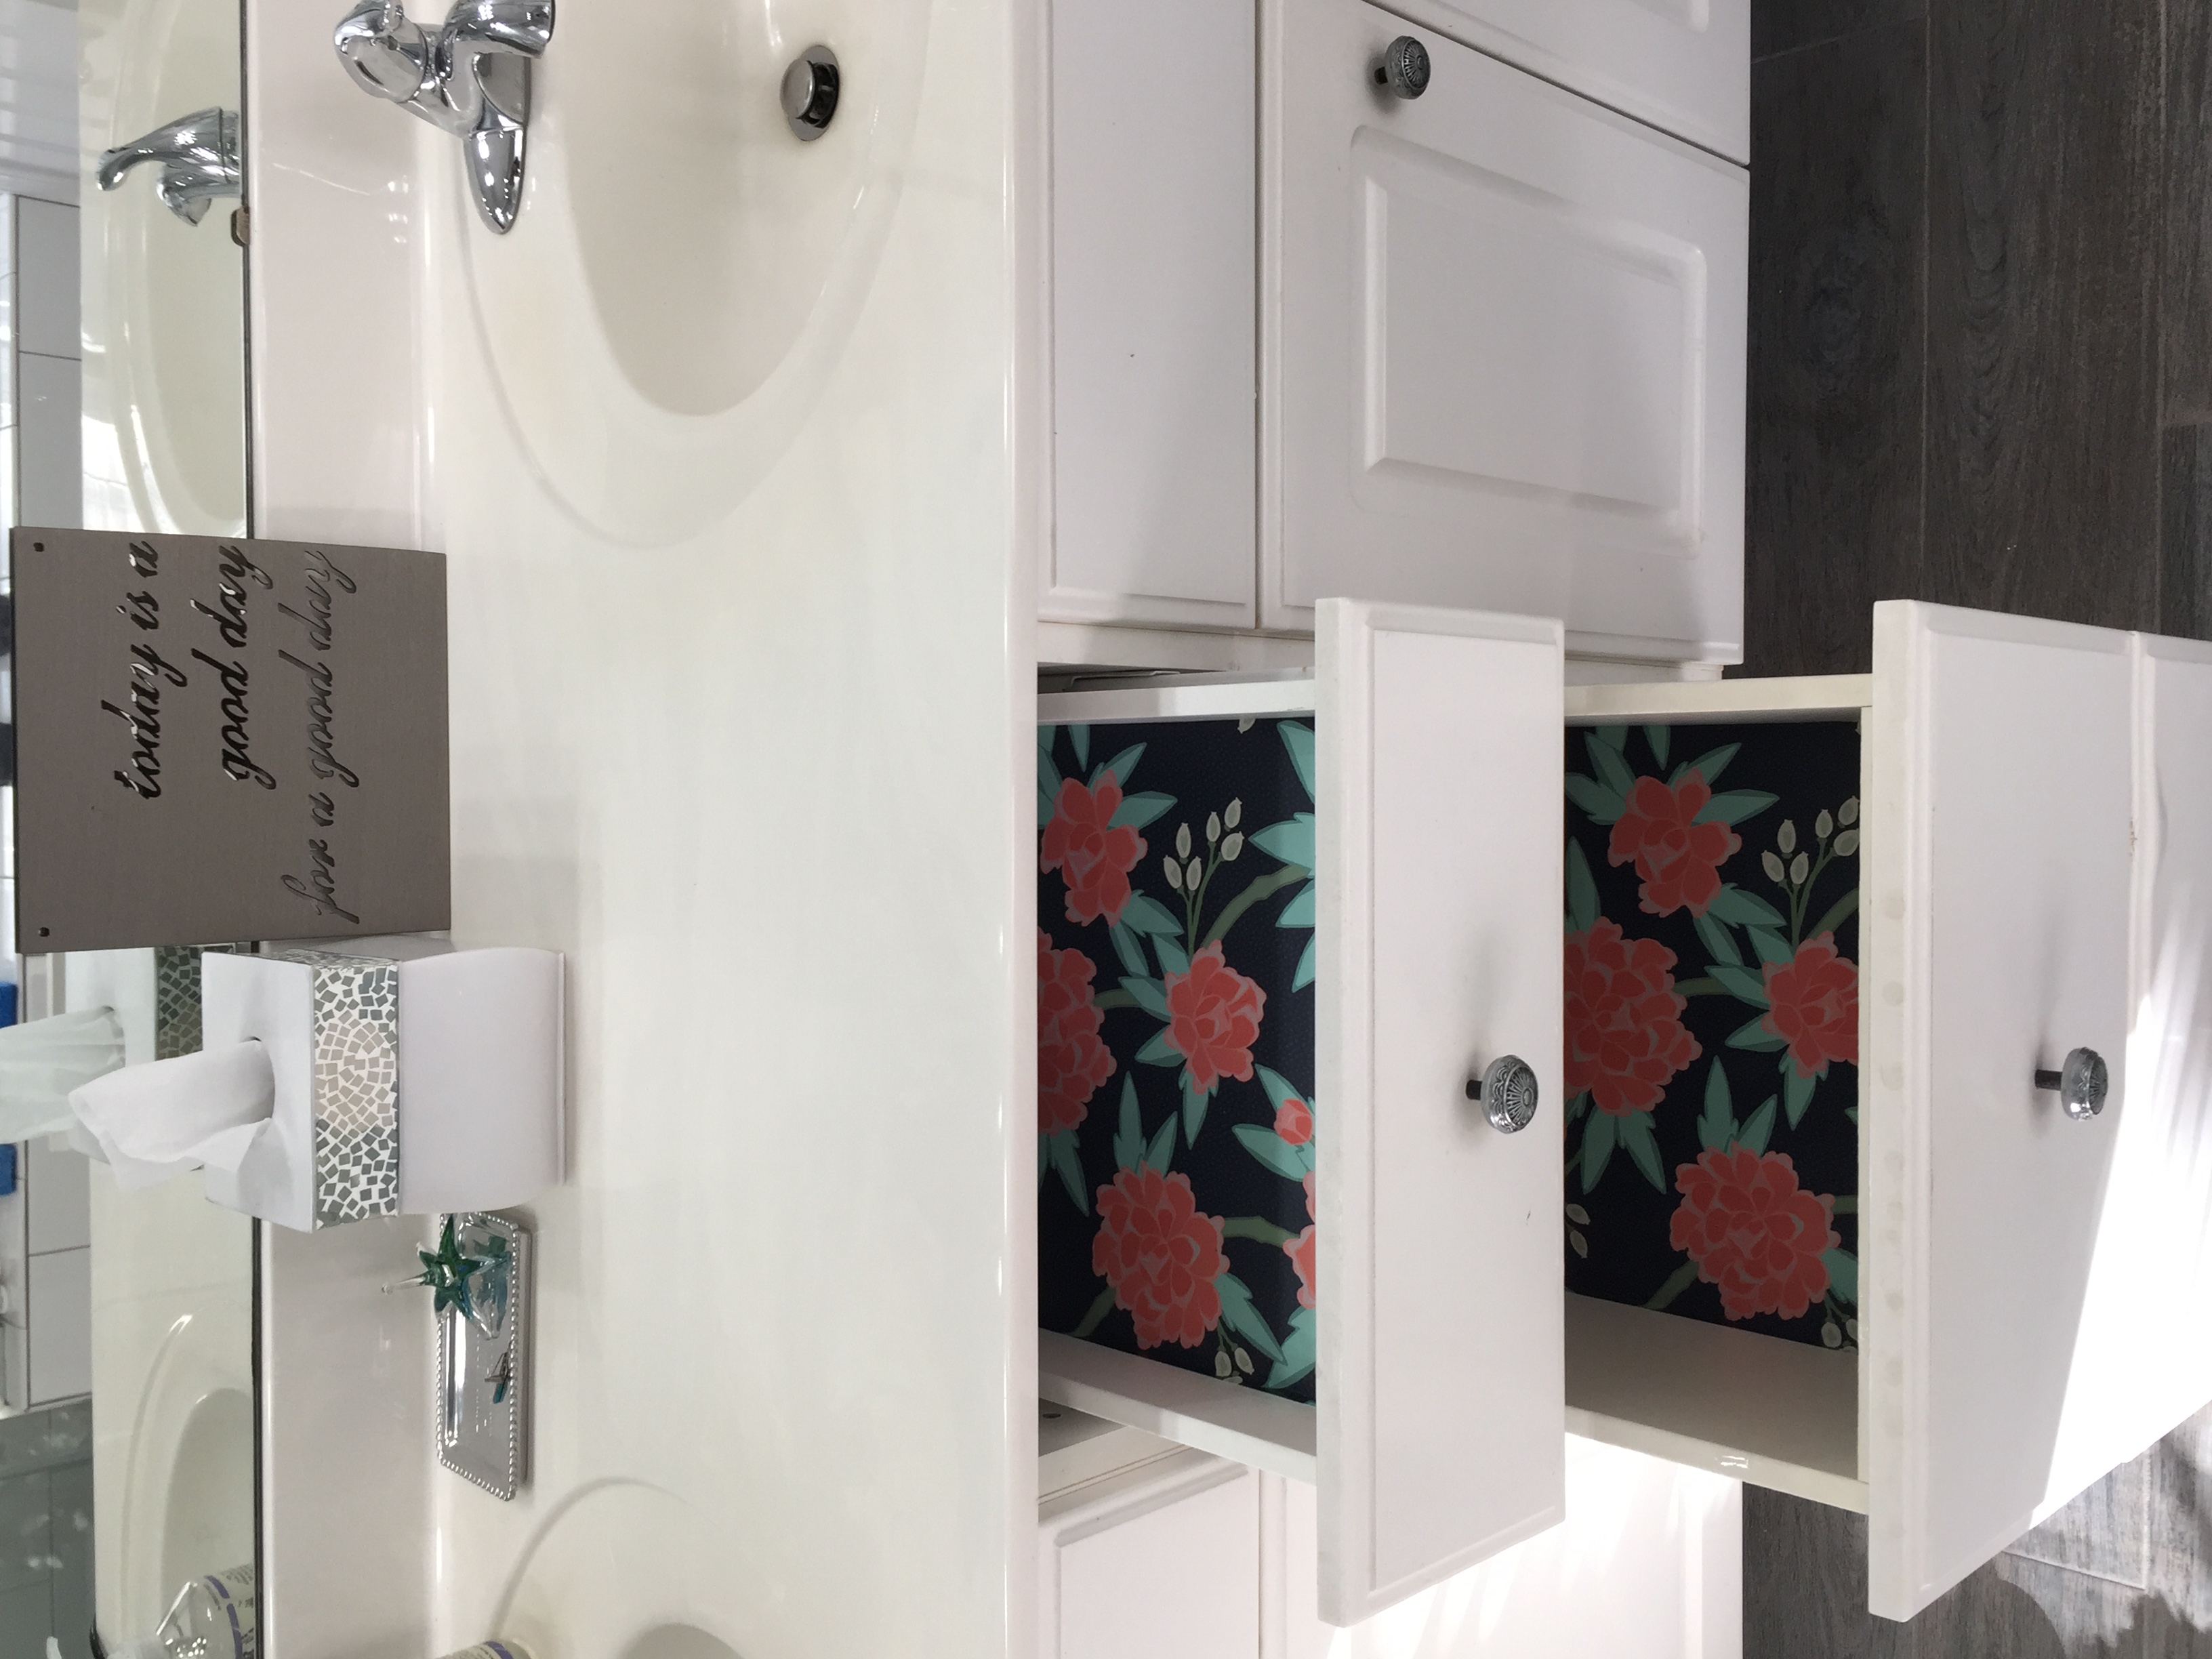 vanity interior cabinet mirror above your and house black drawers having the perfecting storage oval pe wooden on bathroom sink with white counter drawer completed top between appealing wall